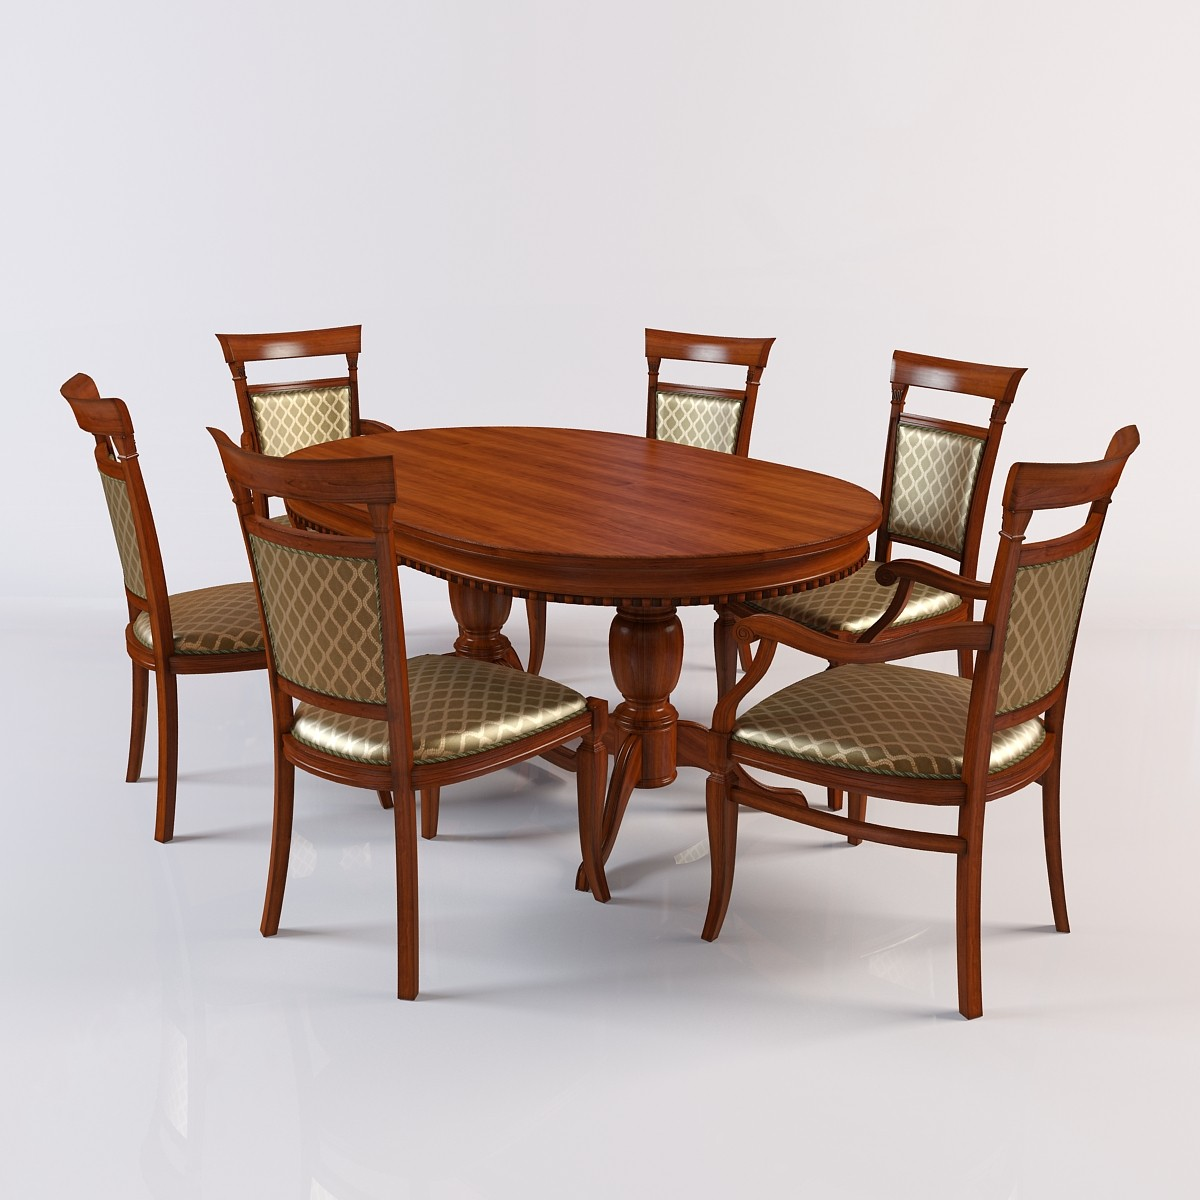 table_chair_Florida - Venezia1_1.jpg